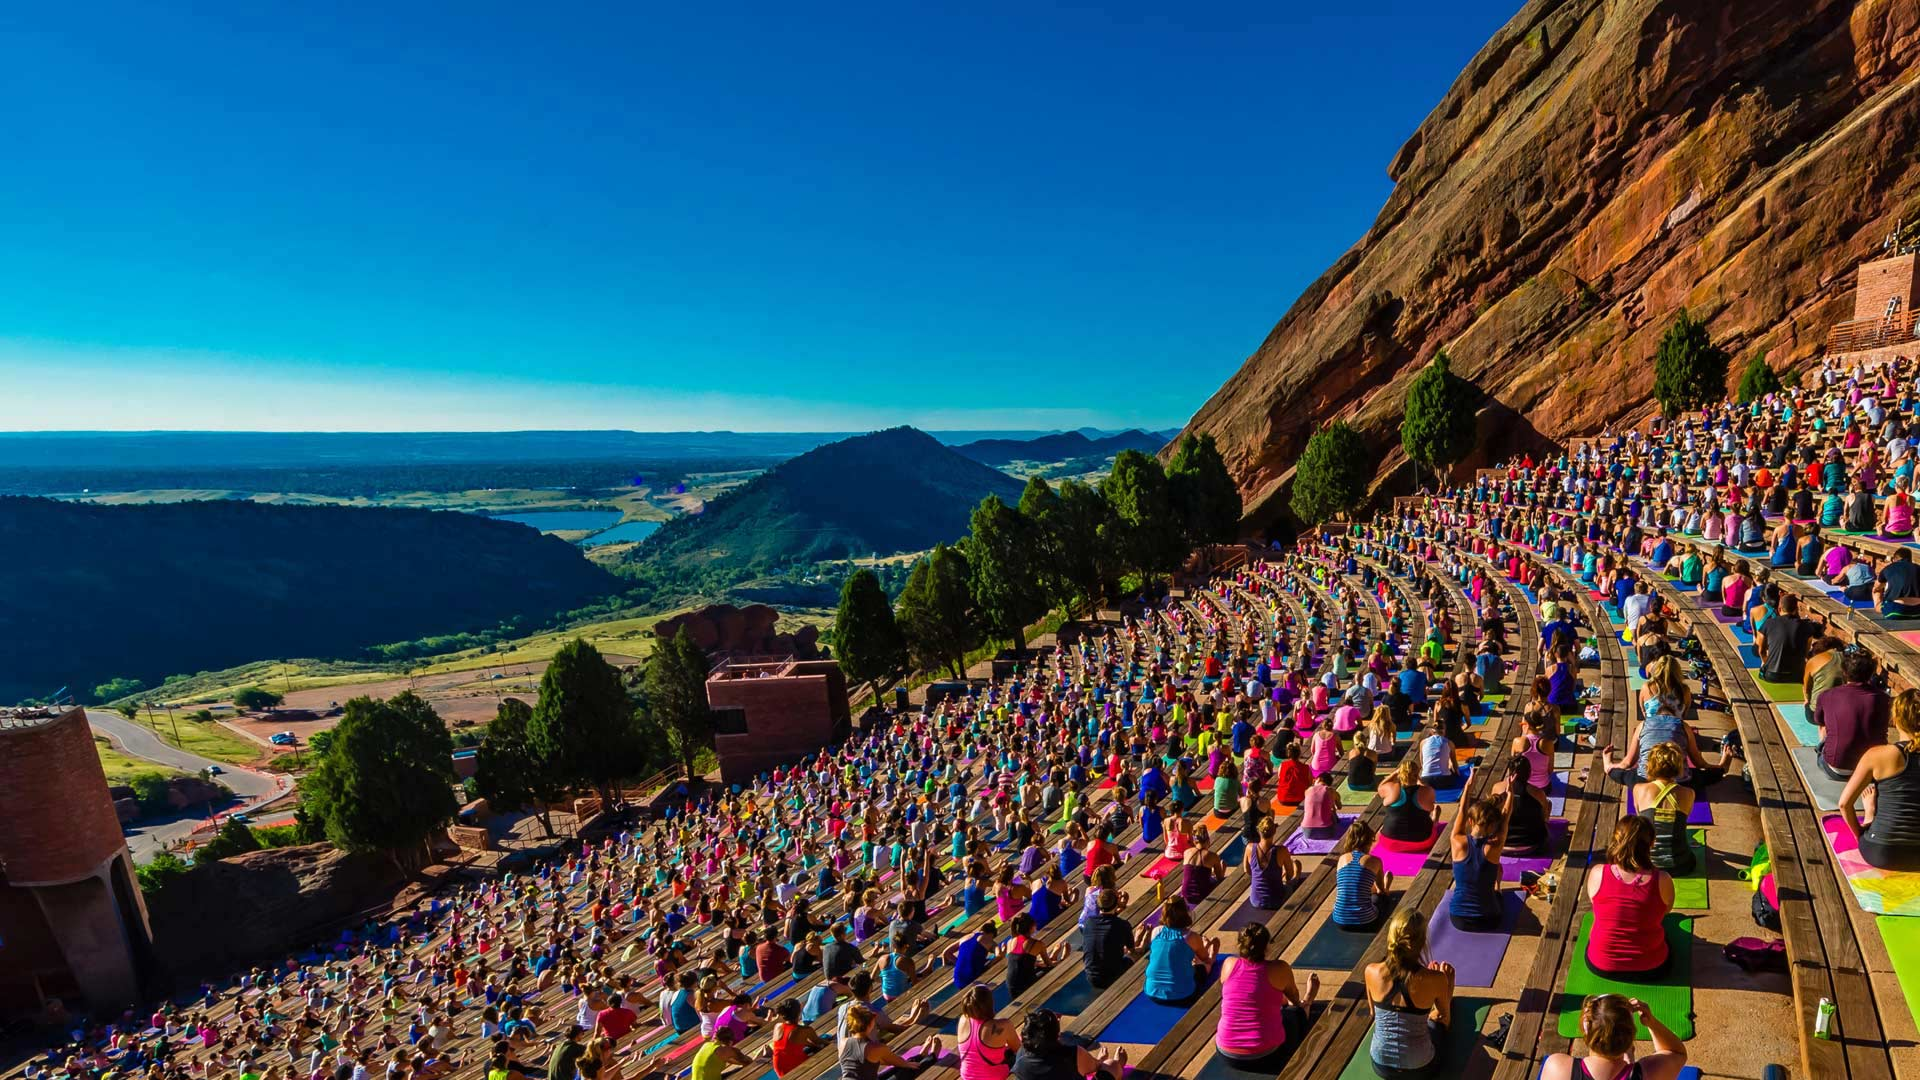 Yoga Practitioners At Red Rocks Amphitheatre In Colorado Peapix